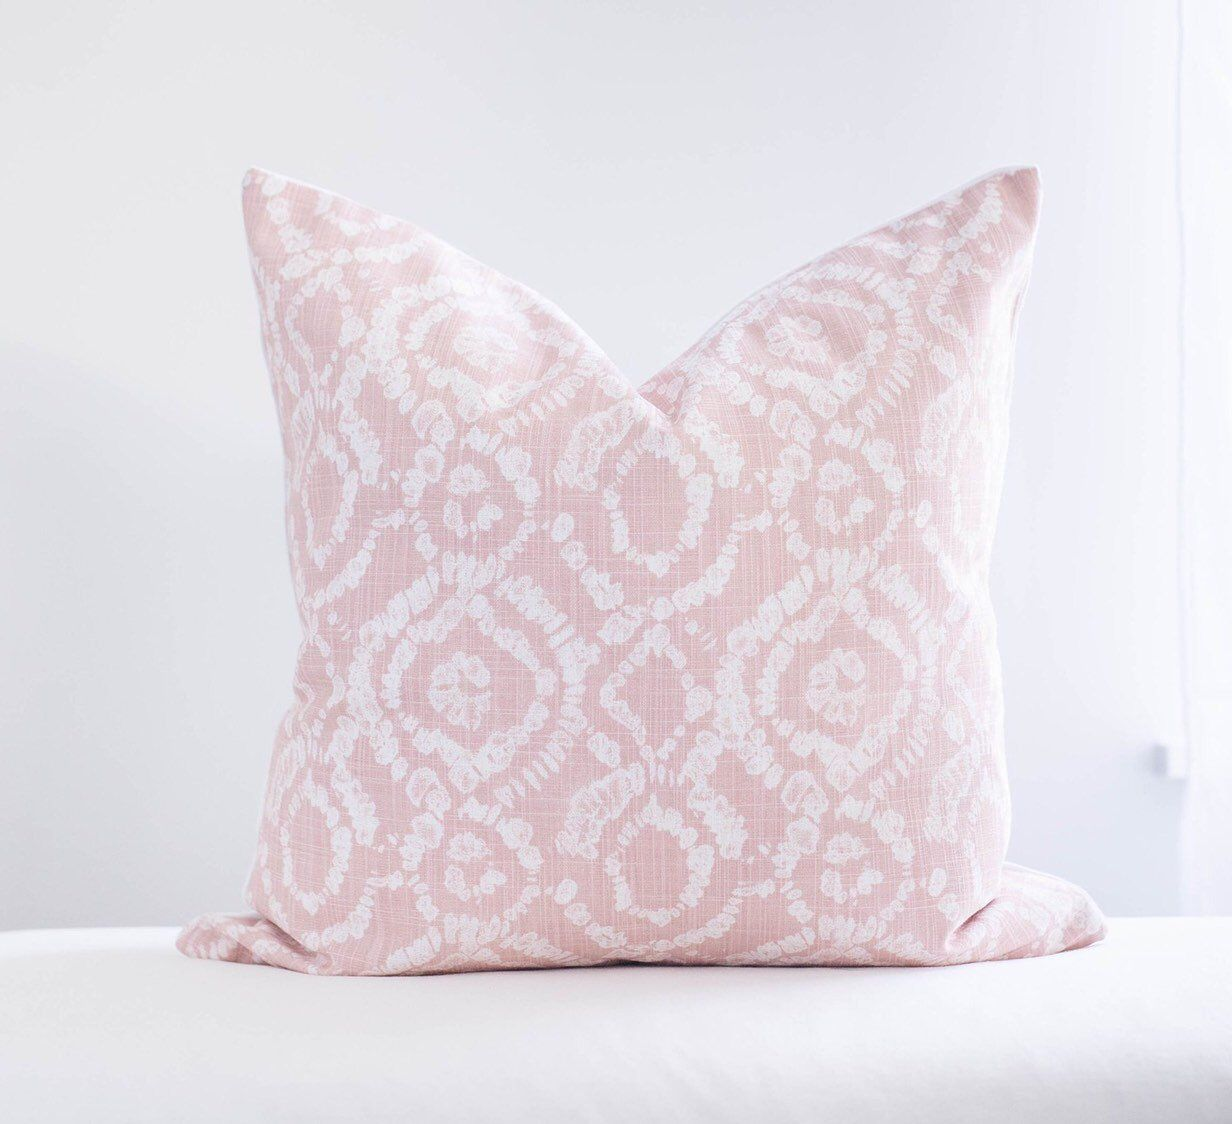 Blush Pink Textured Throw Pillow Cover